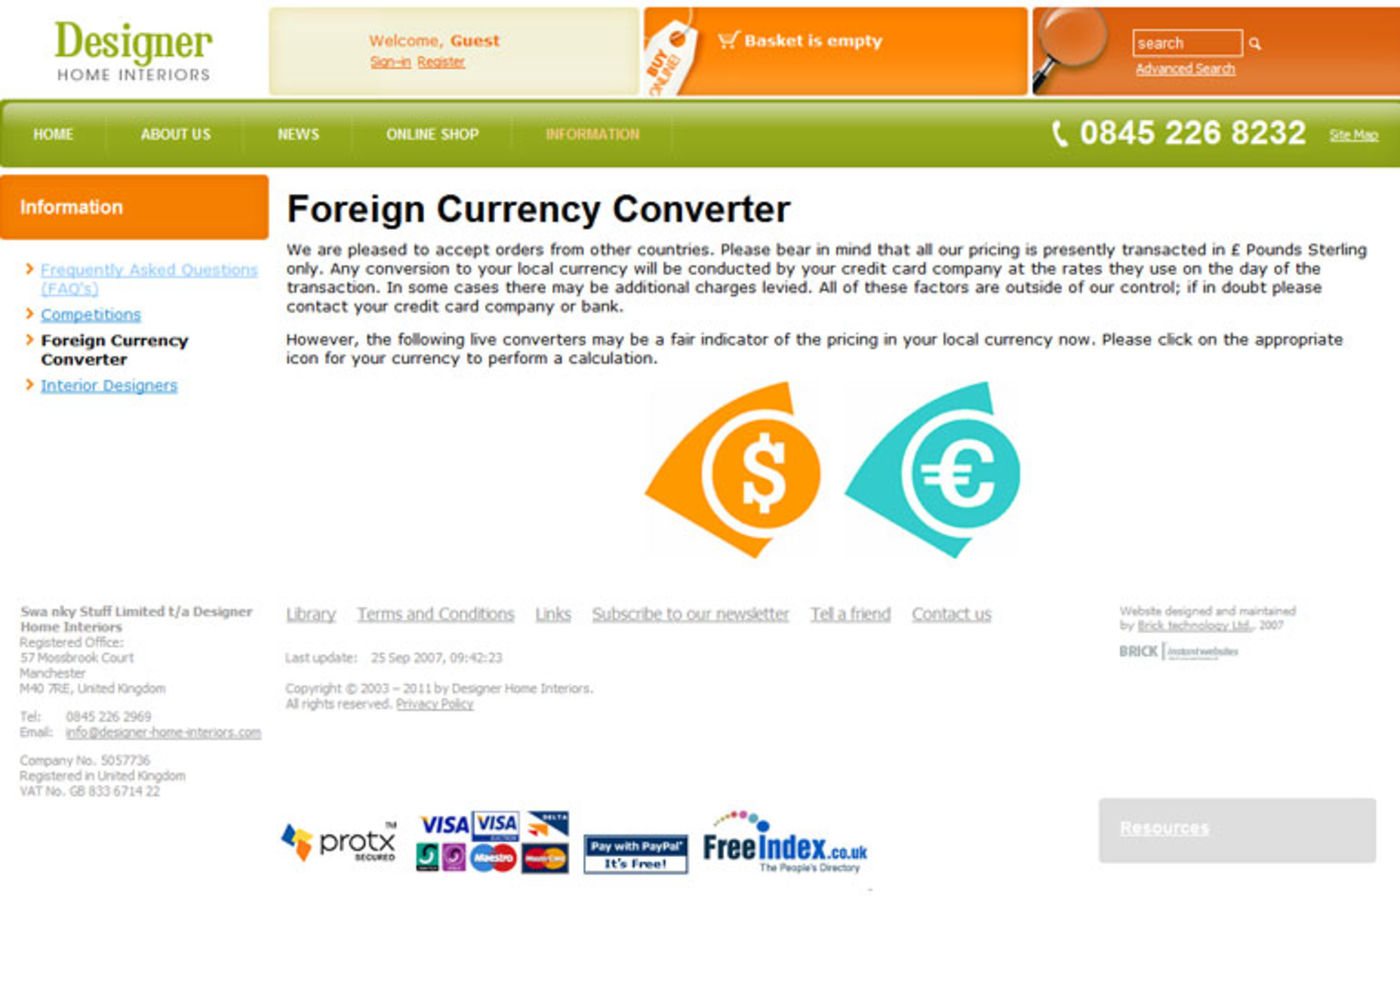 Designer Home Interiors Foreign currency converter